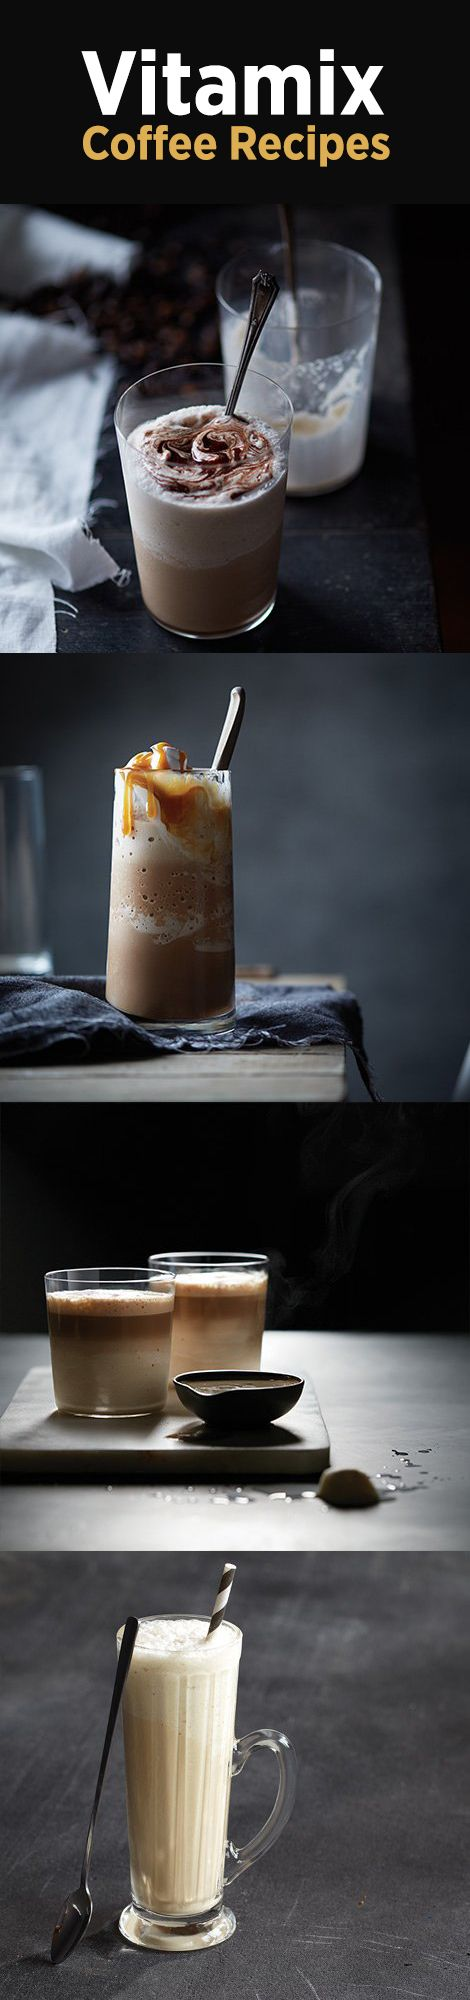 Satisfy your coffee-craving with these delicious coffee recipes from Vitamix!